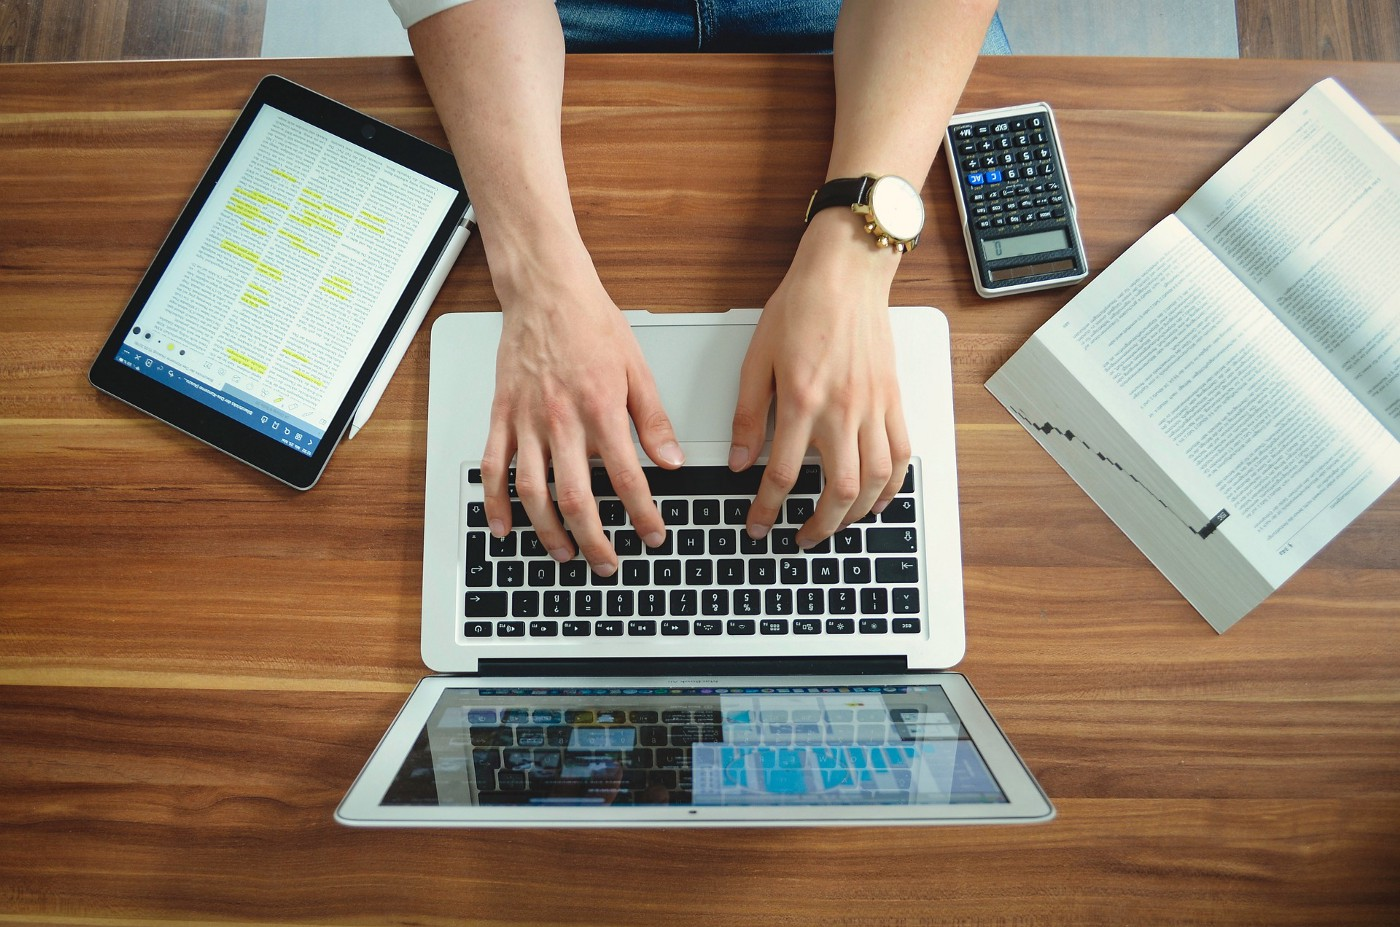 Two hands on a laptop keyboard. There is a calculator, an open book and a tablet on the table.